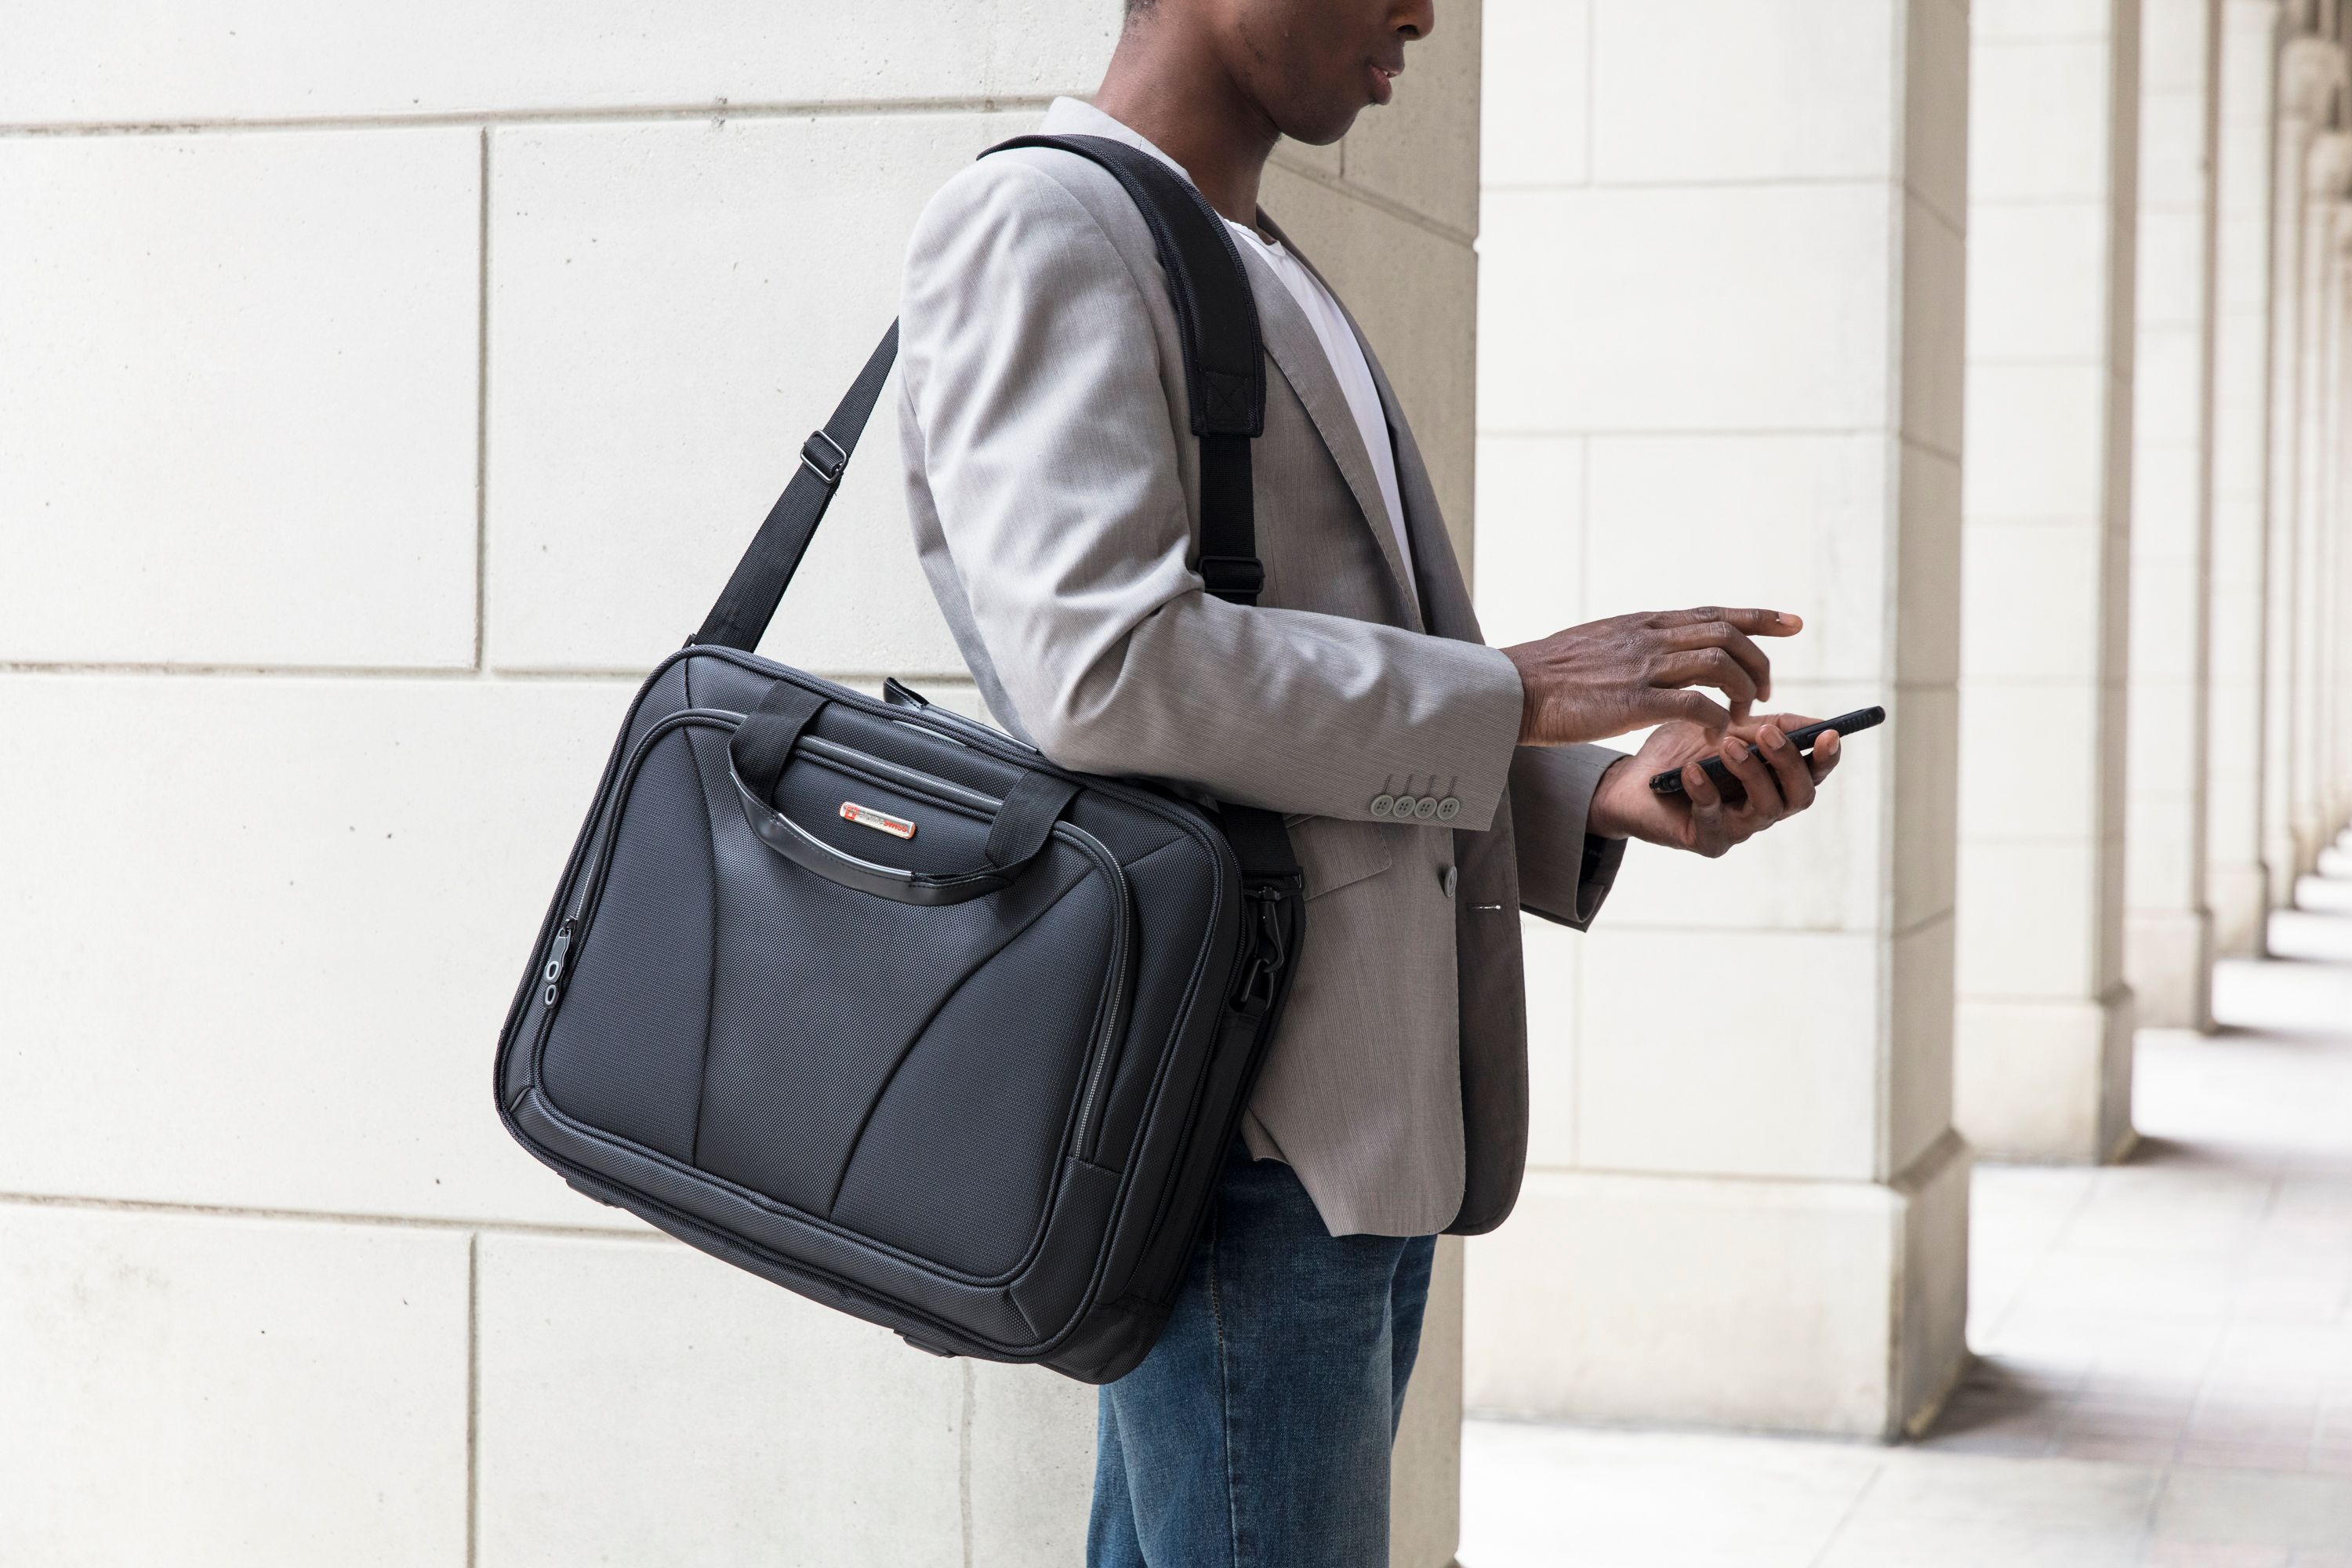 Men's Briefcases vs Backpacks: Which Is the Best For You?